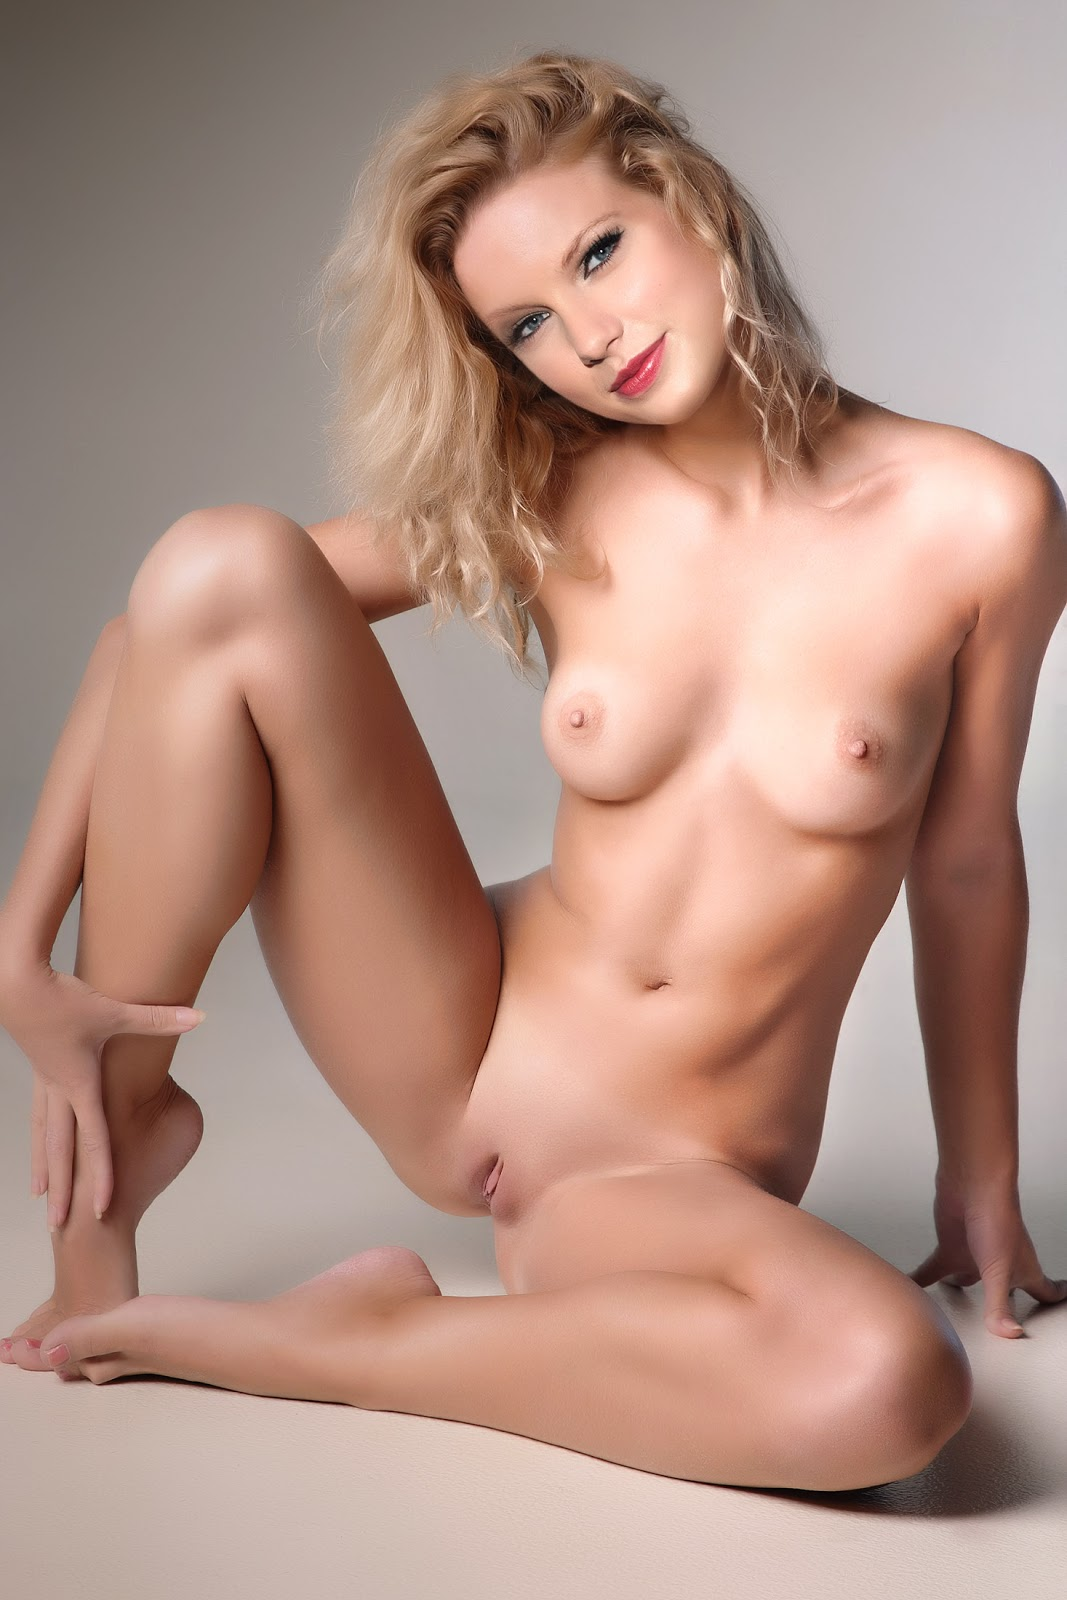 Taylor nude naked boobs - Hot Nude porn